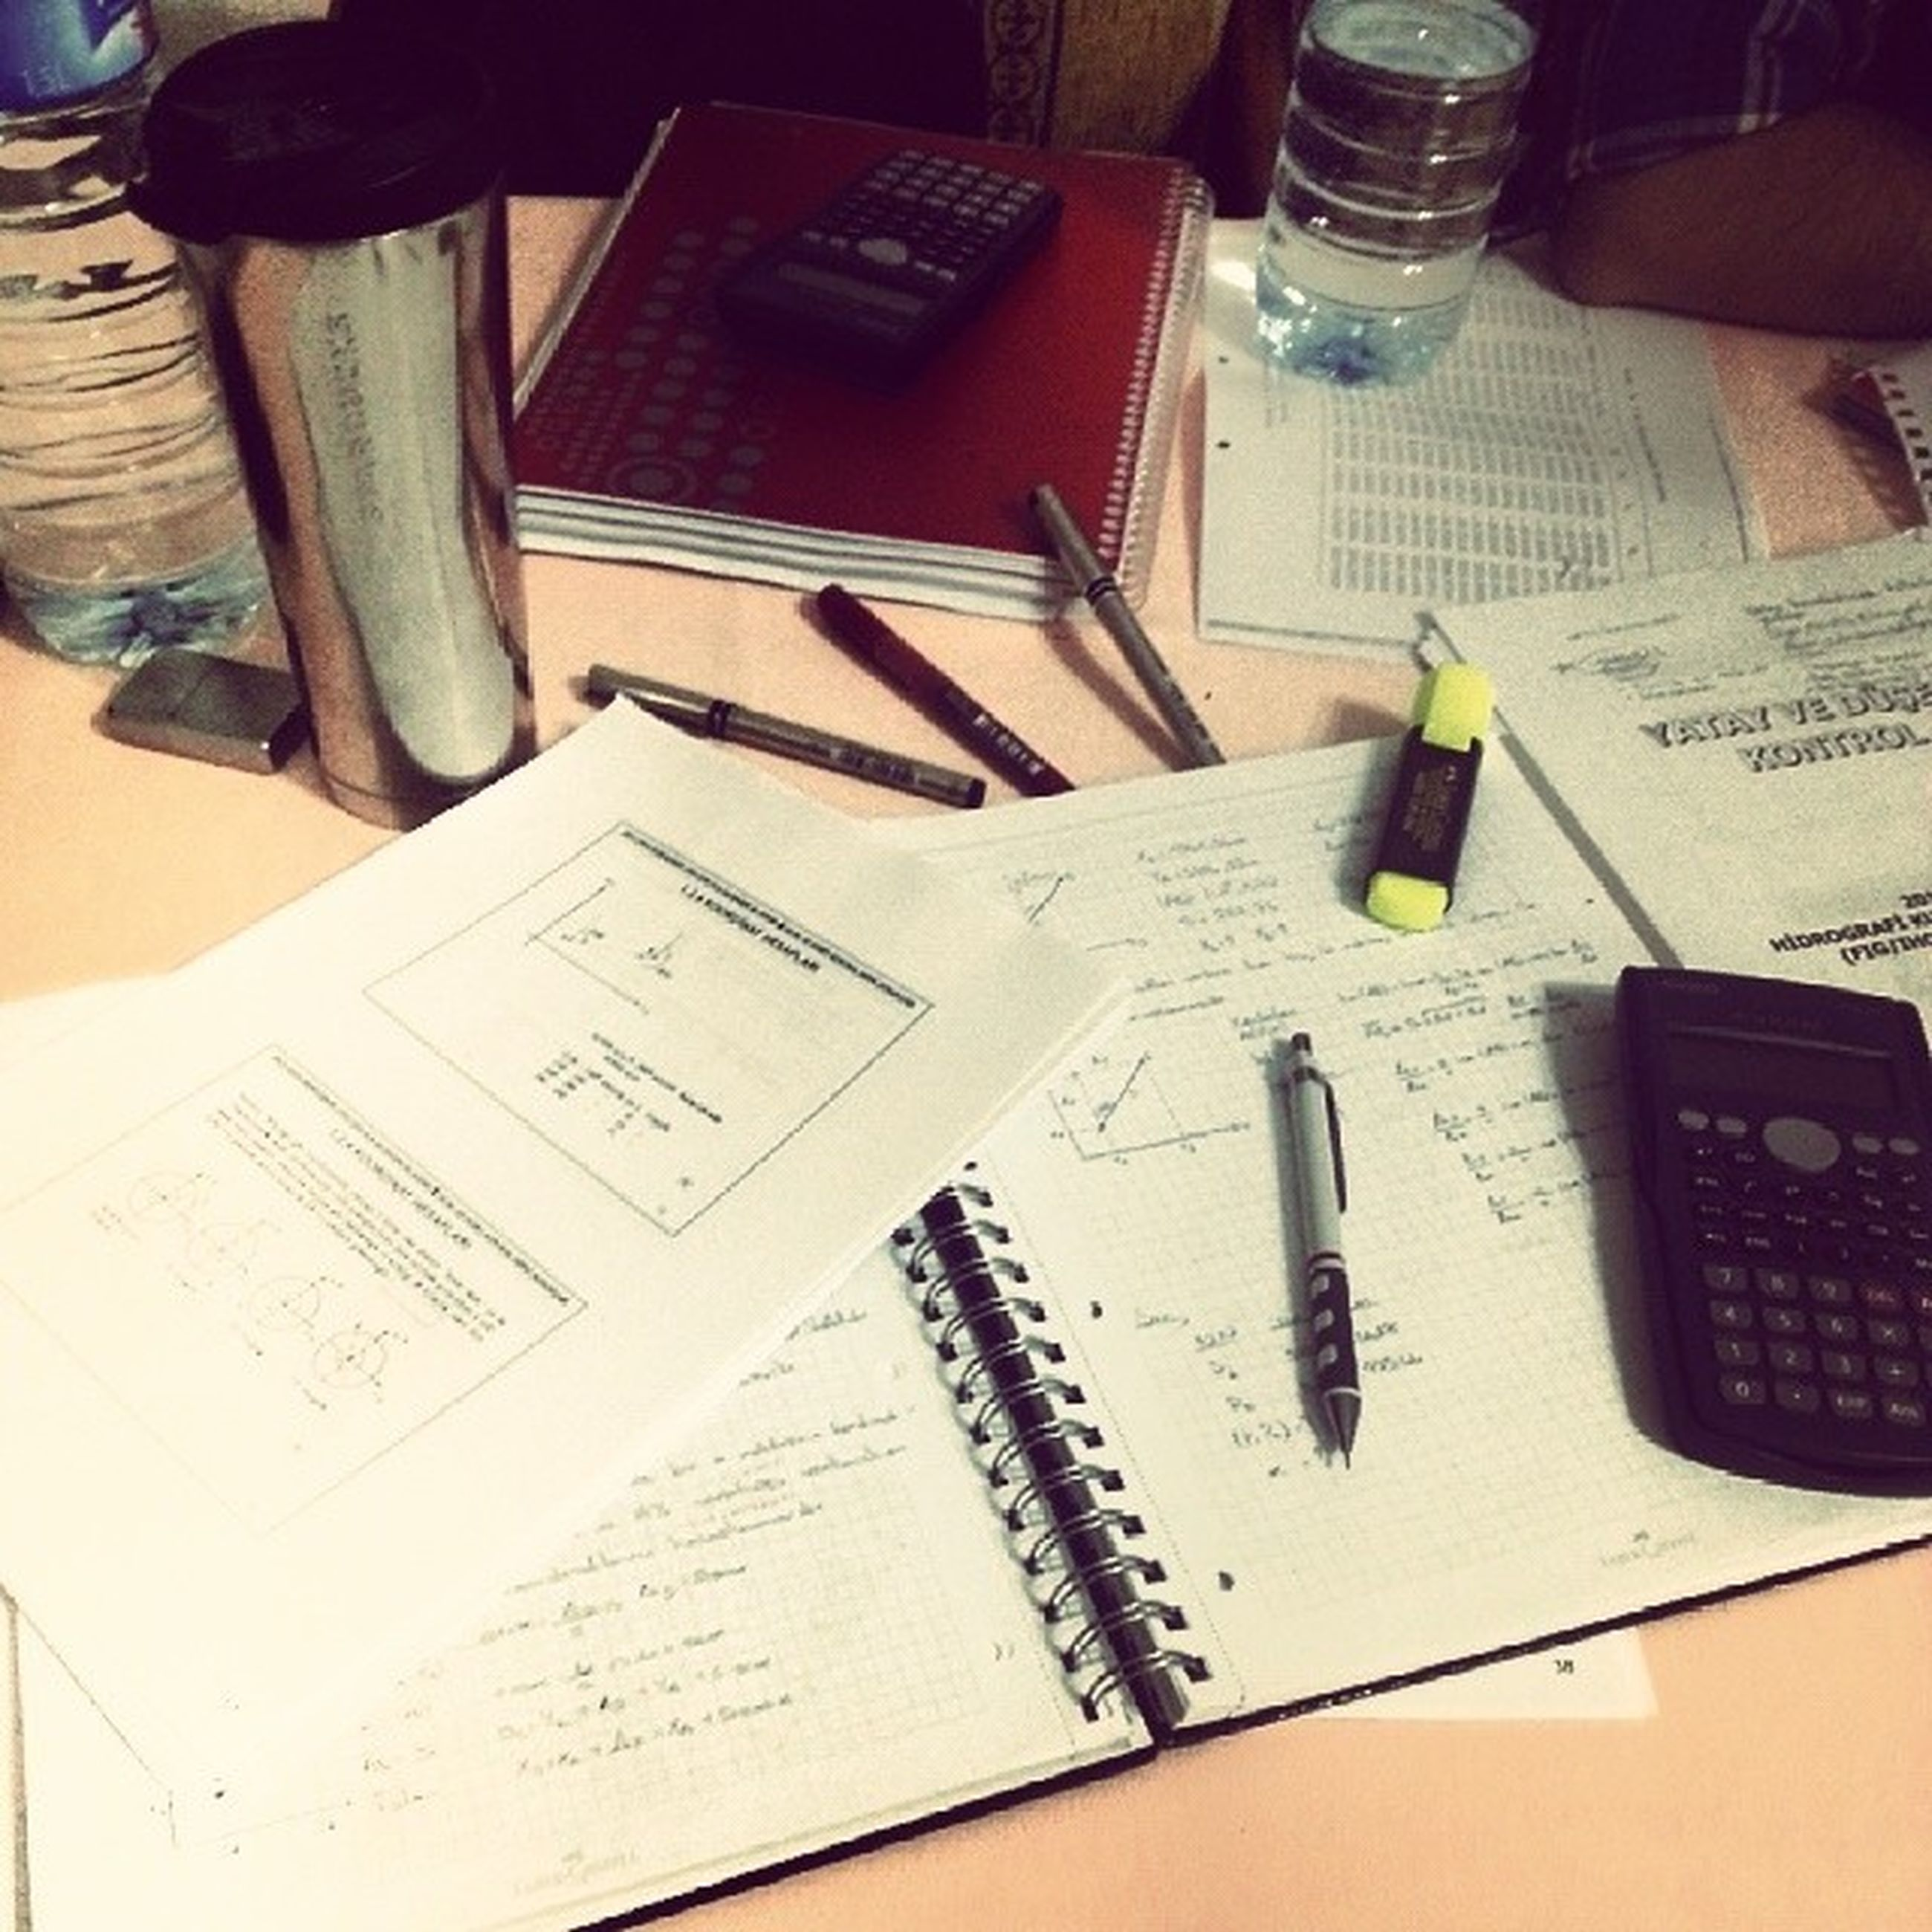 indoors, book, education, communication, paper, text, table, high angle view, document, western script, pen, close-up, learning, desk, still life, laptop, page, writing, technology, wireless technology